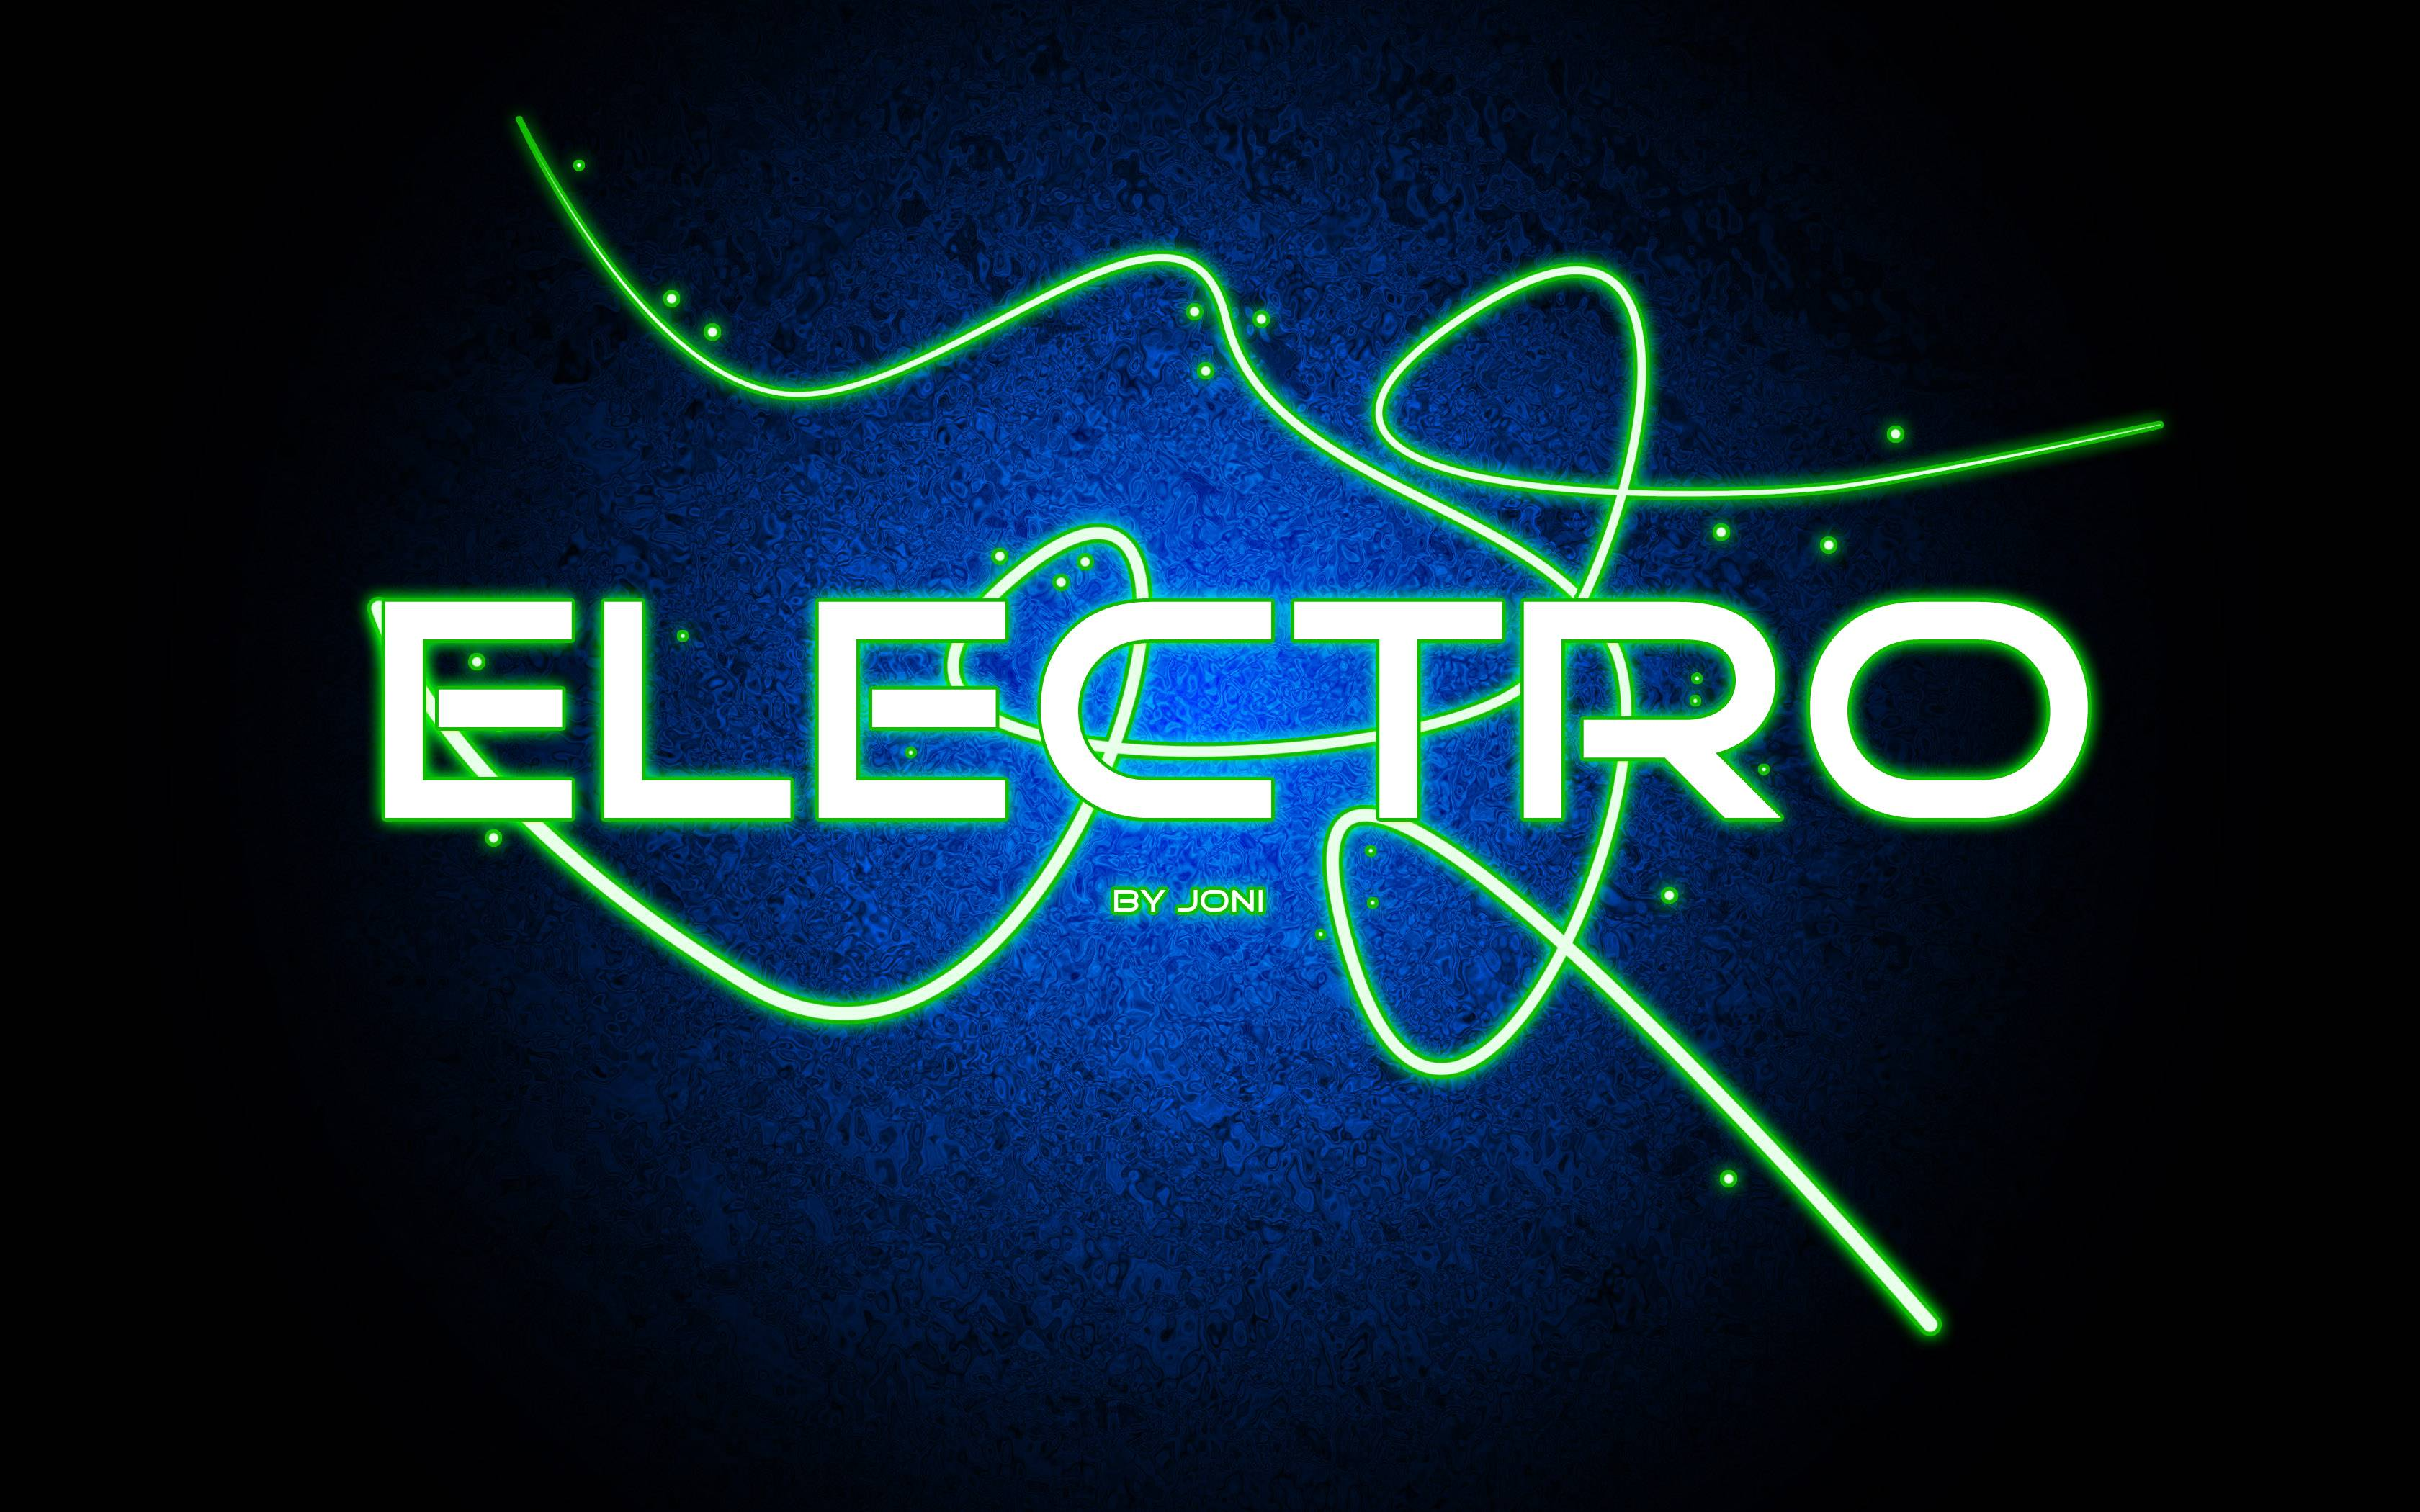 Electro house music wallpapers wallpaper cave for House house house music